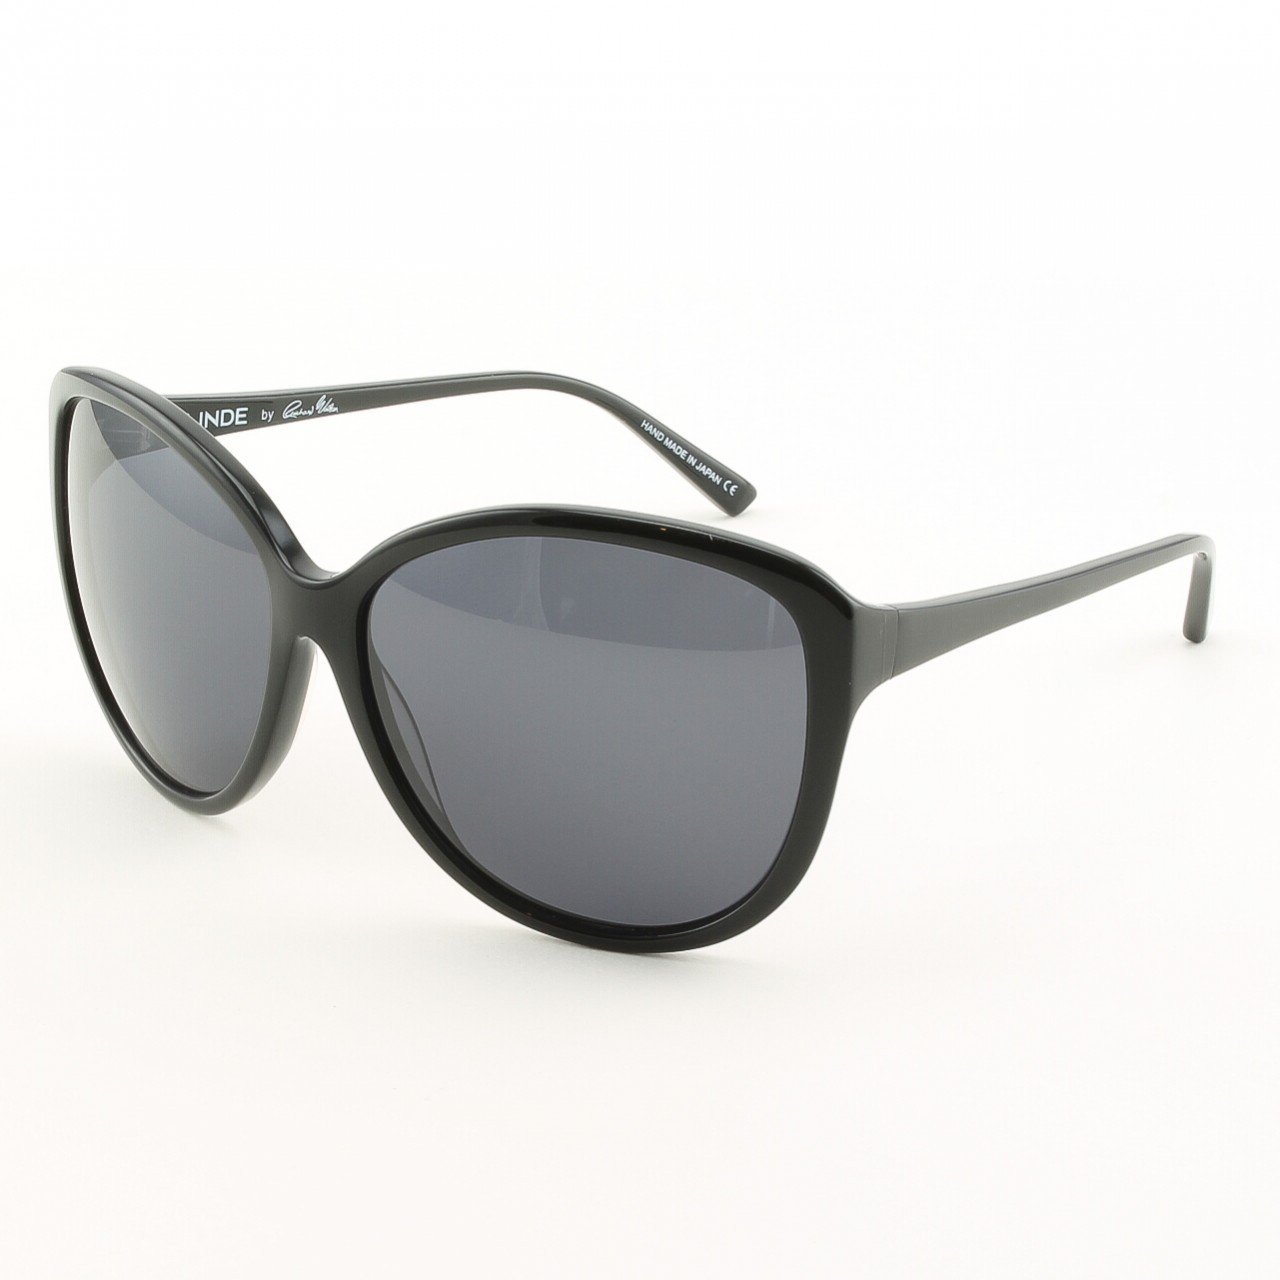 Blinde Like Totally Women's Sunglasses Col. Black with Solid Black Lenses